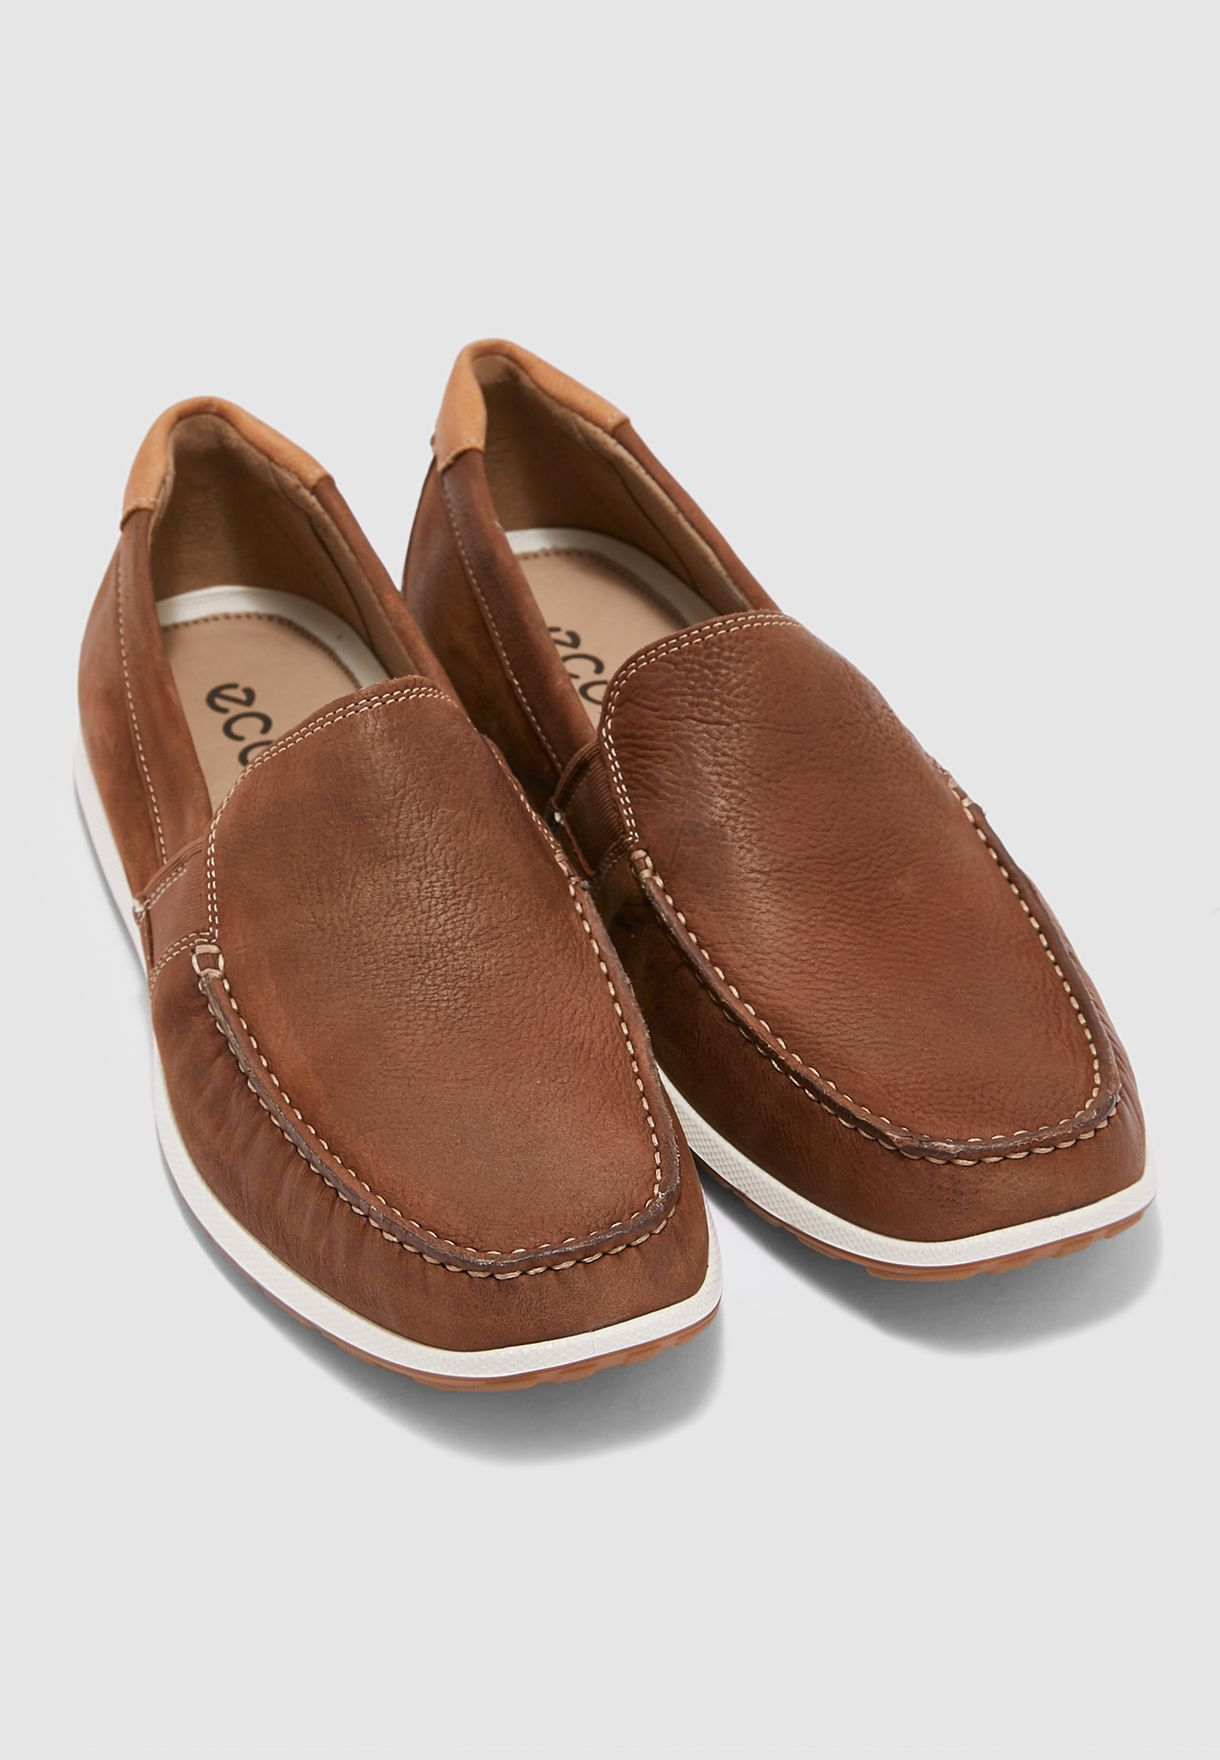 Reciprico Loafers